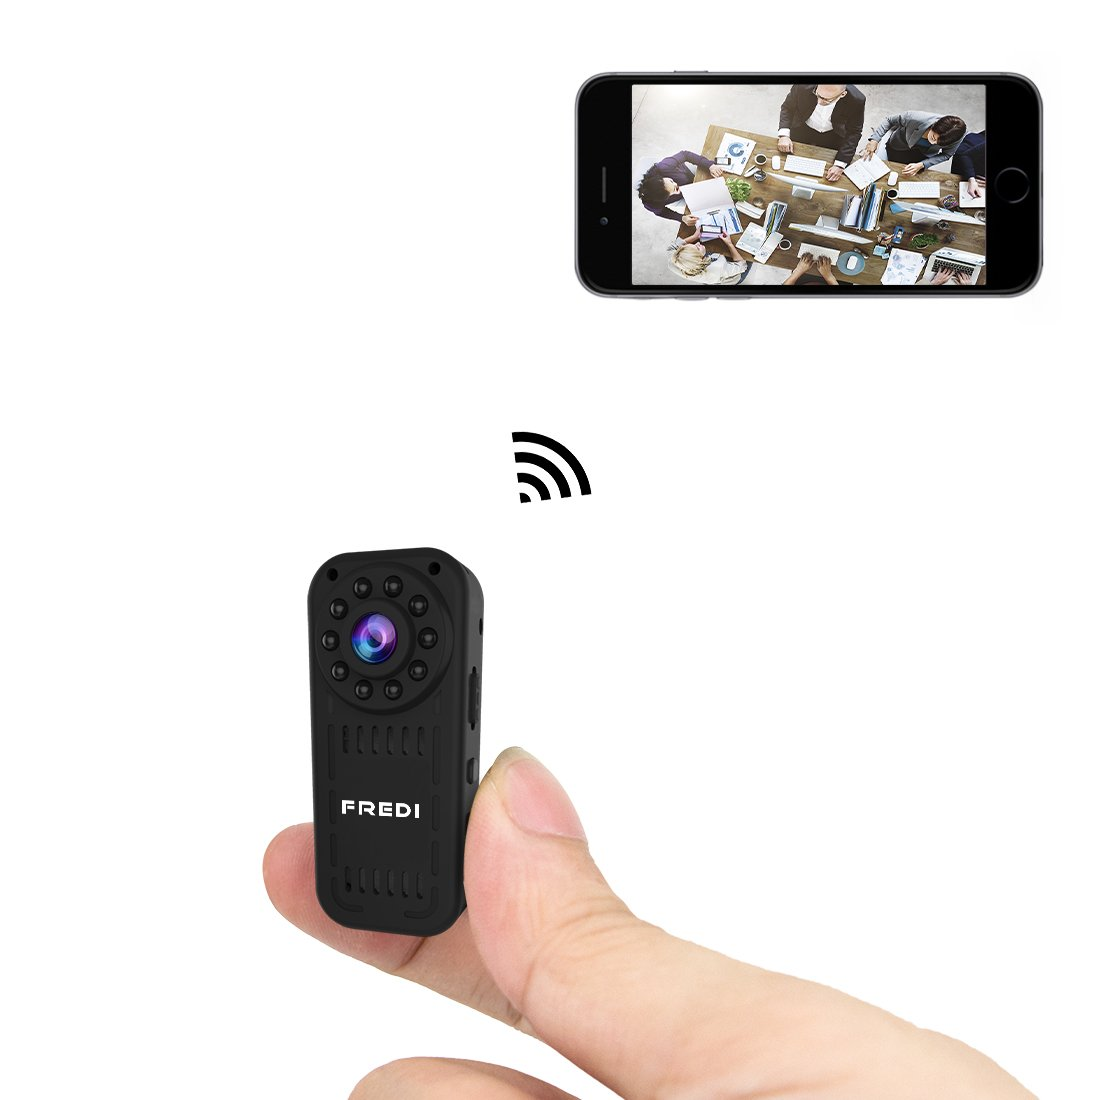 How to install spy camera in bathroom - Fredi Hidden Mini Camera Spy Mini Camera 1080p Hd Mini Wireless Camera Ip Camera For Iphone Android Phone Ipad Remote View With Motion Detection Support